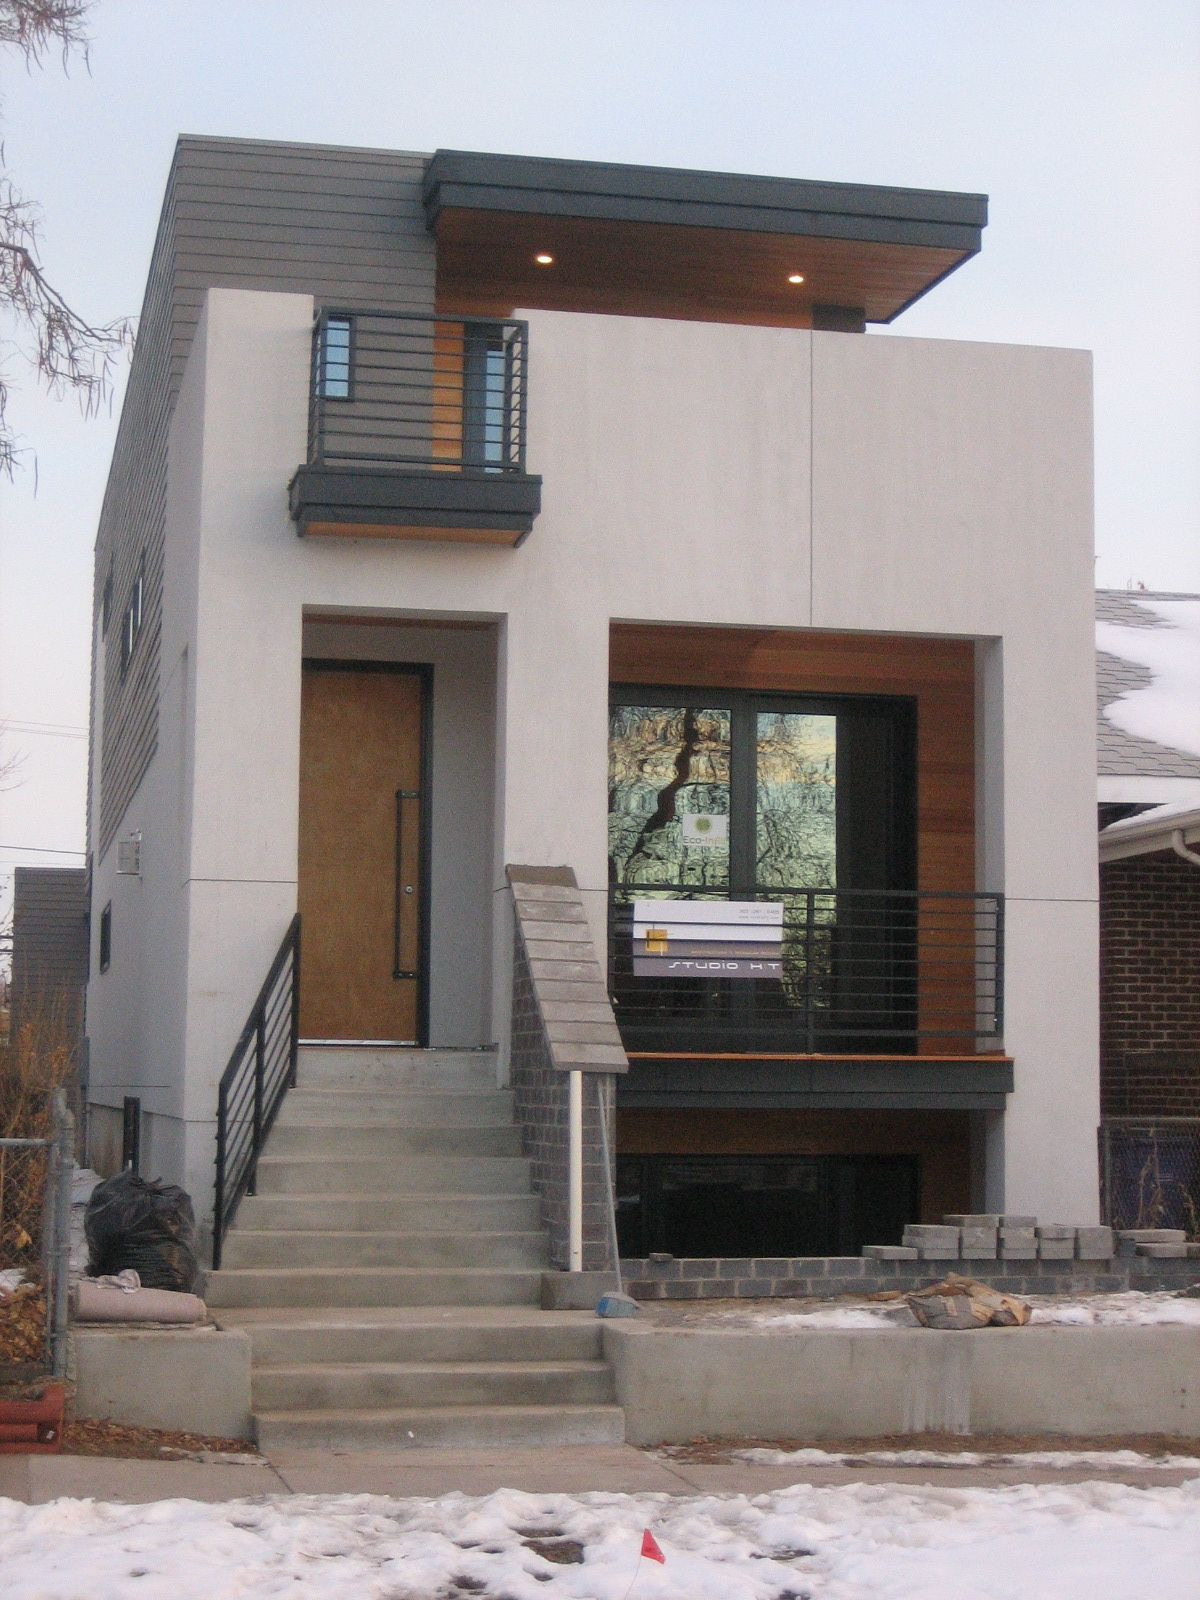 Best Small House Designs In the World Inspirational Awesome Minimalist Prefabricated Small Houses with Stairs